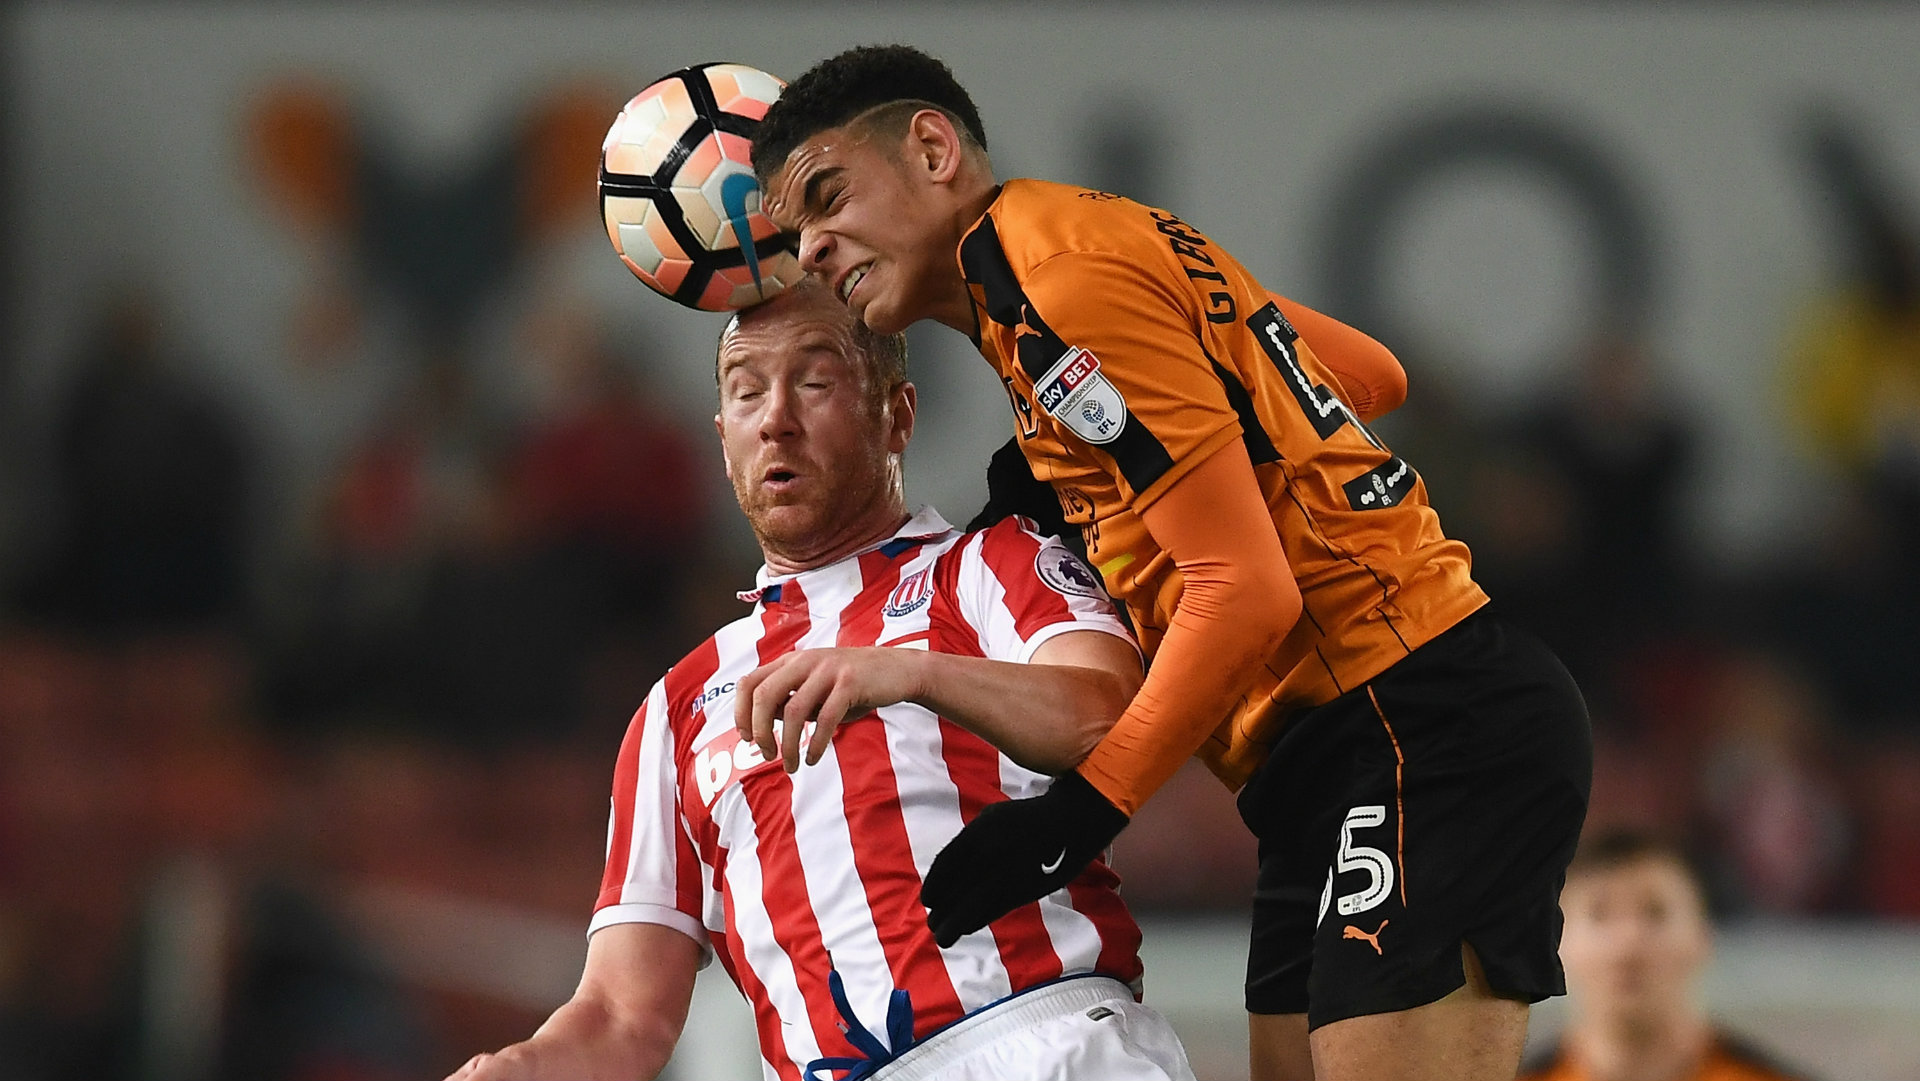 Morgan Gibbs-White, Wolves